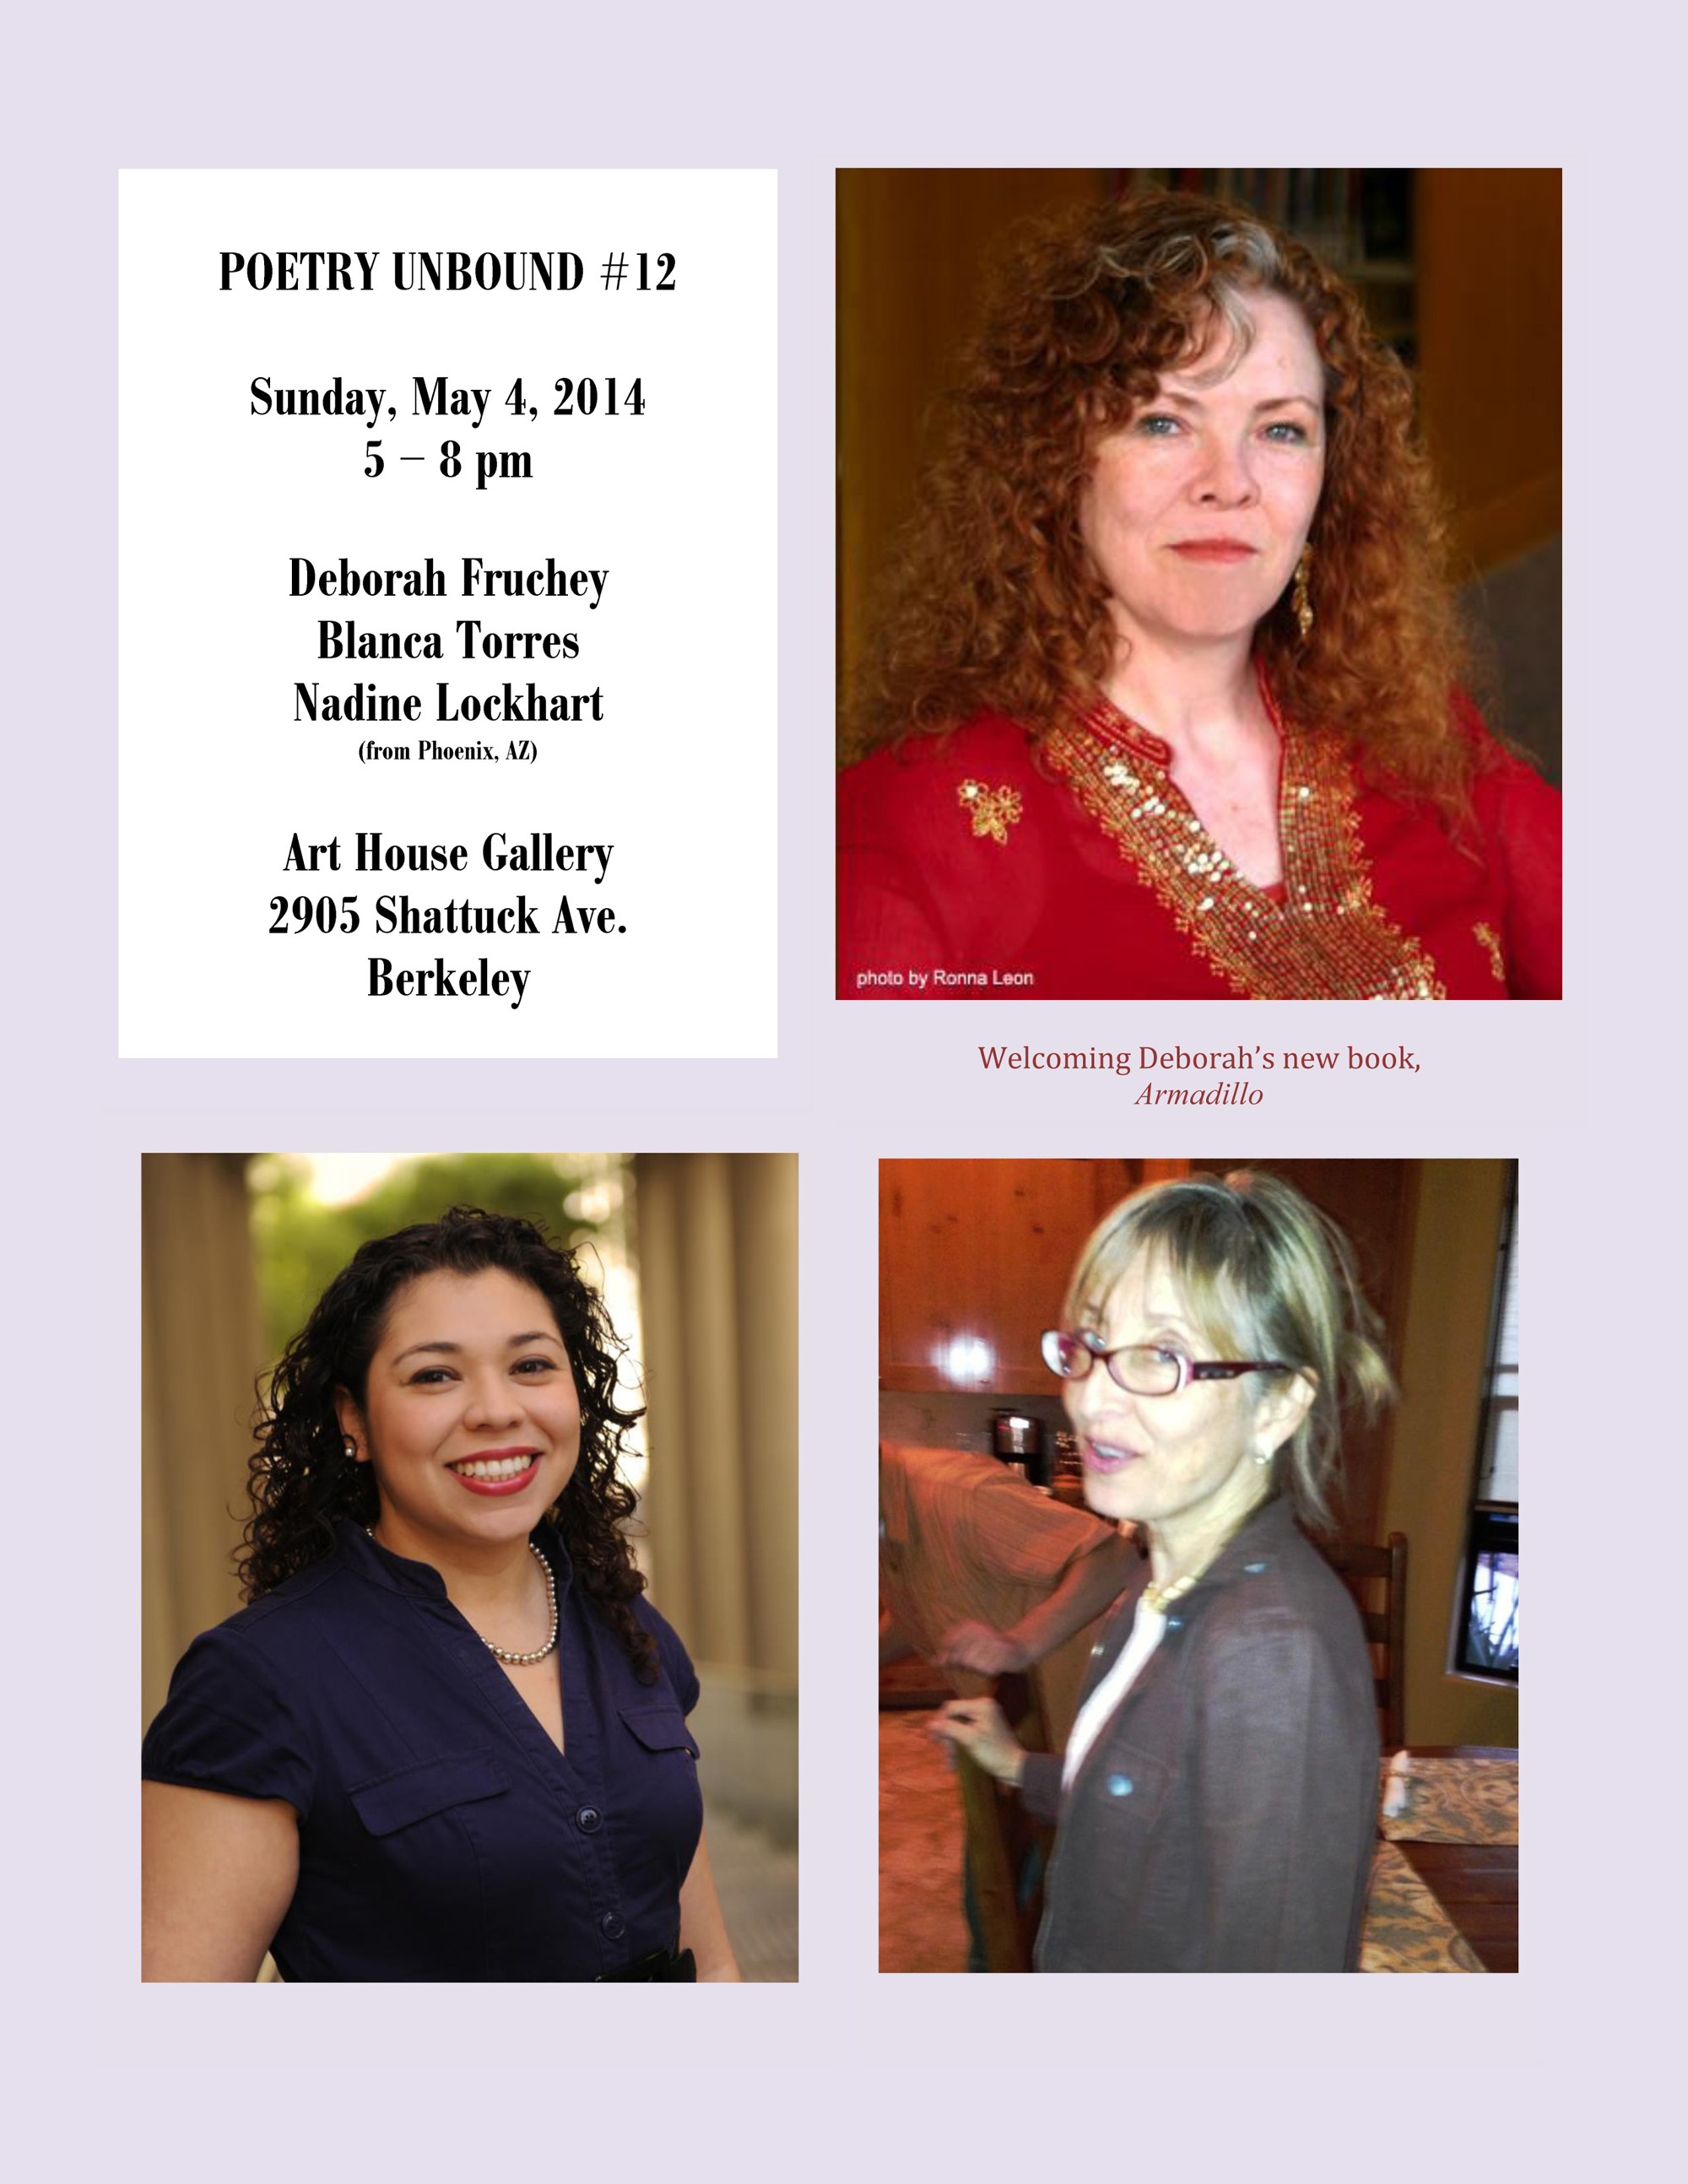 FLYER-with-HEADSHOTS-Poetry-Unbound-12-May-4-2014-2